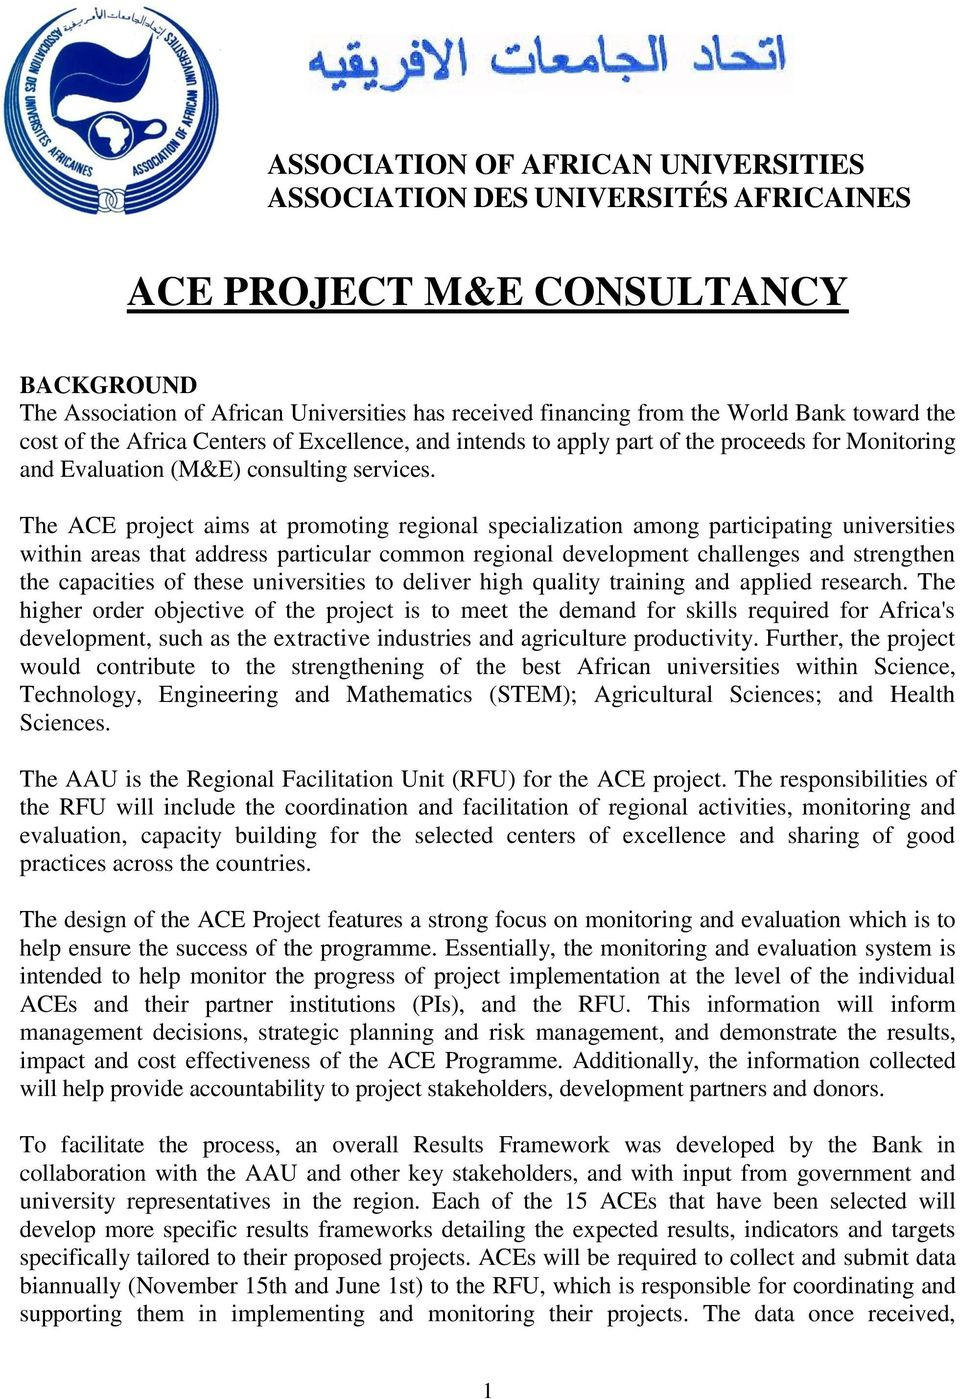 The ACE project aims at promoting regional specialization among participating universities within areas that address particular common regional development challenges and strengthen the capacities of